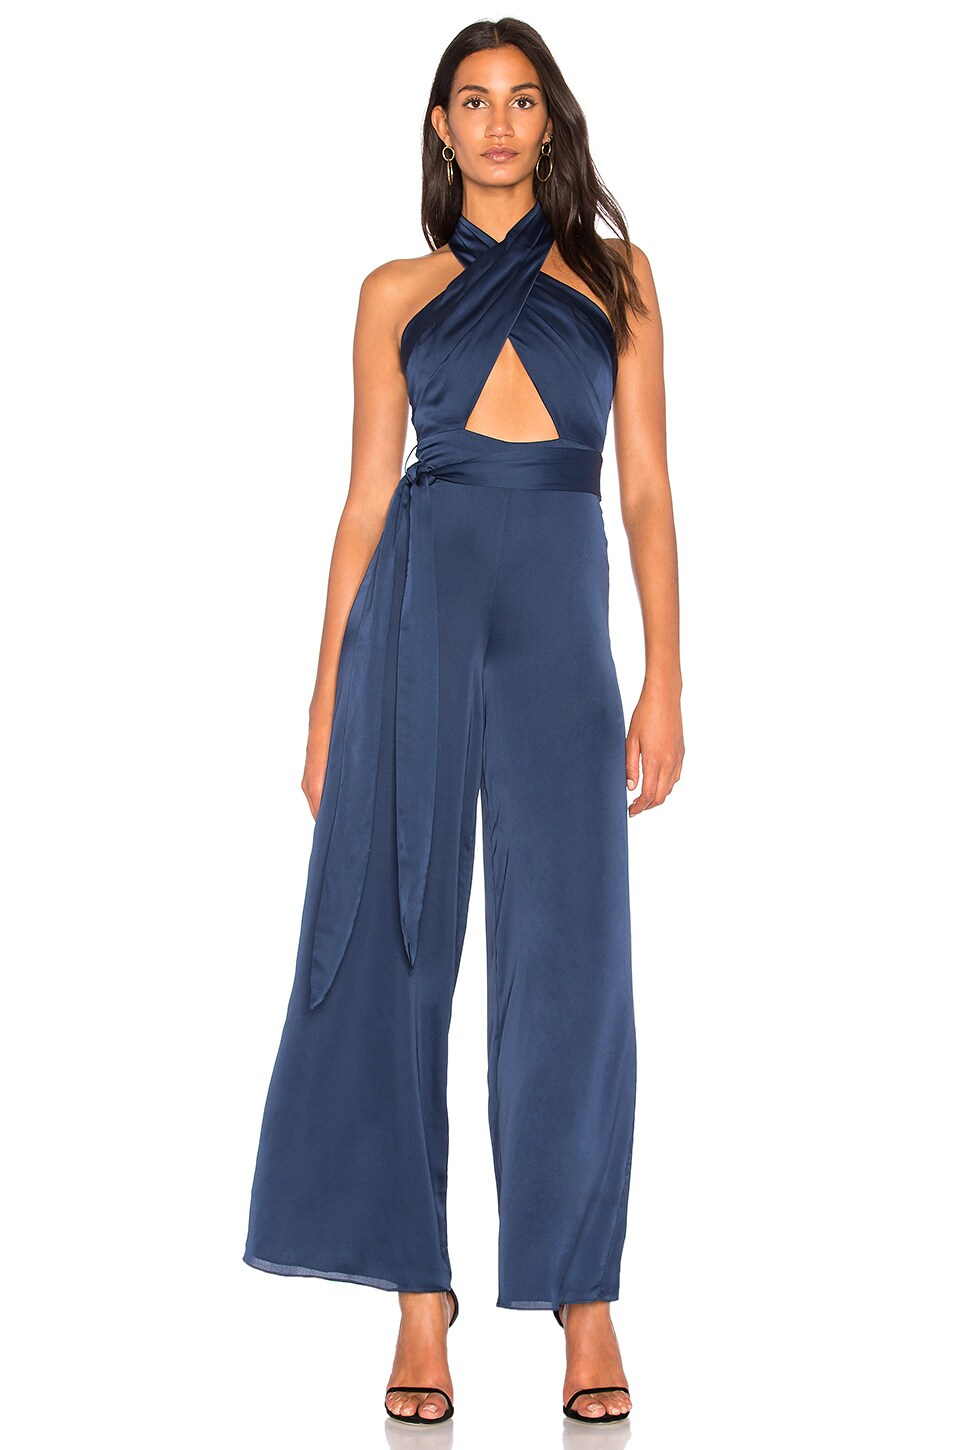 The Gaia Jumpsuit by FAME AND PARTNERS